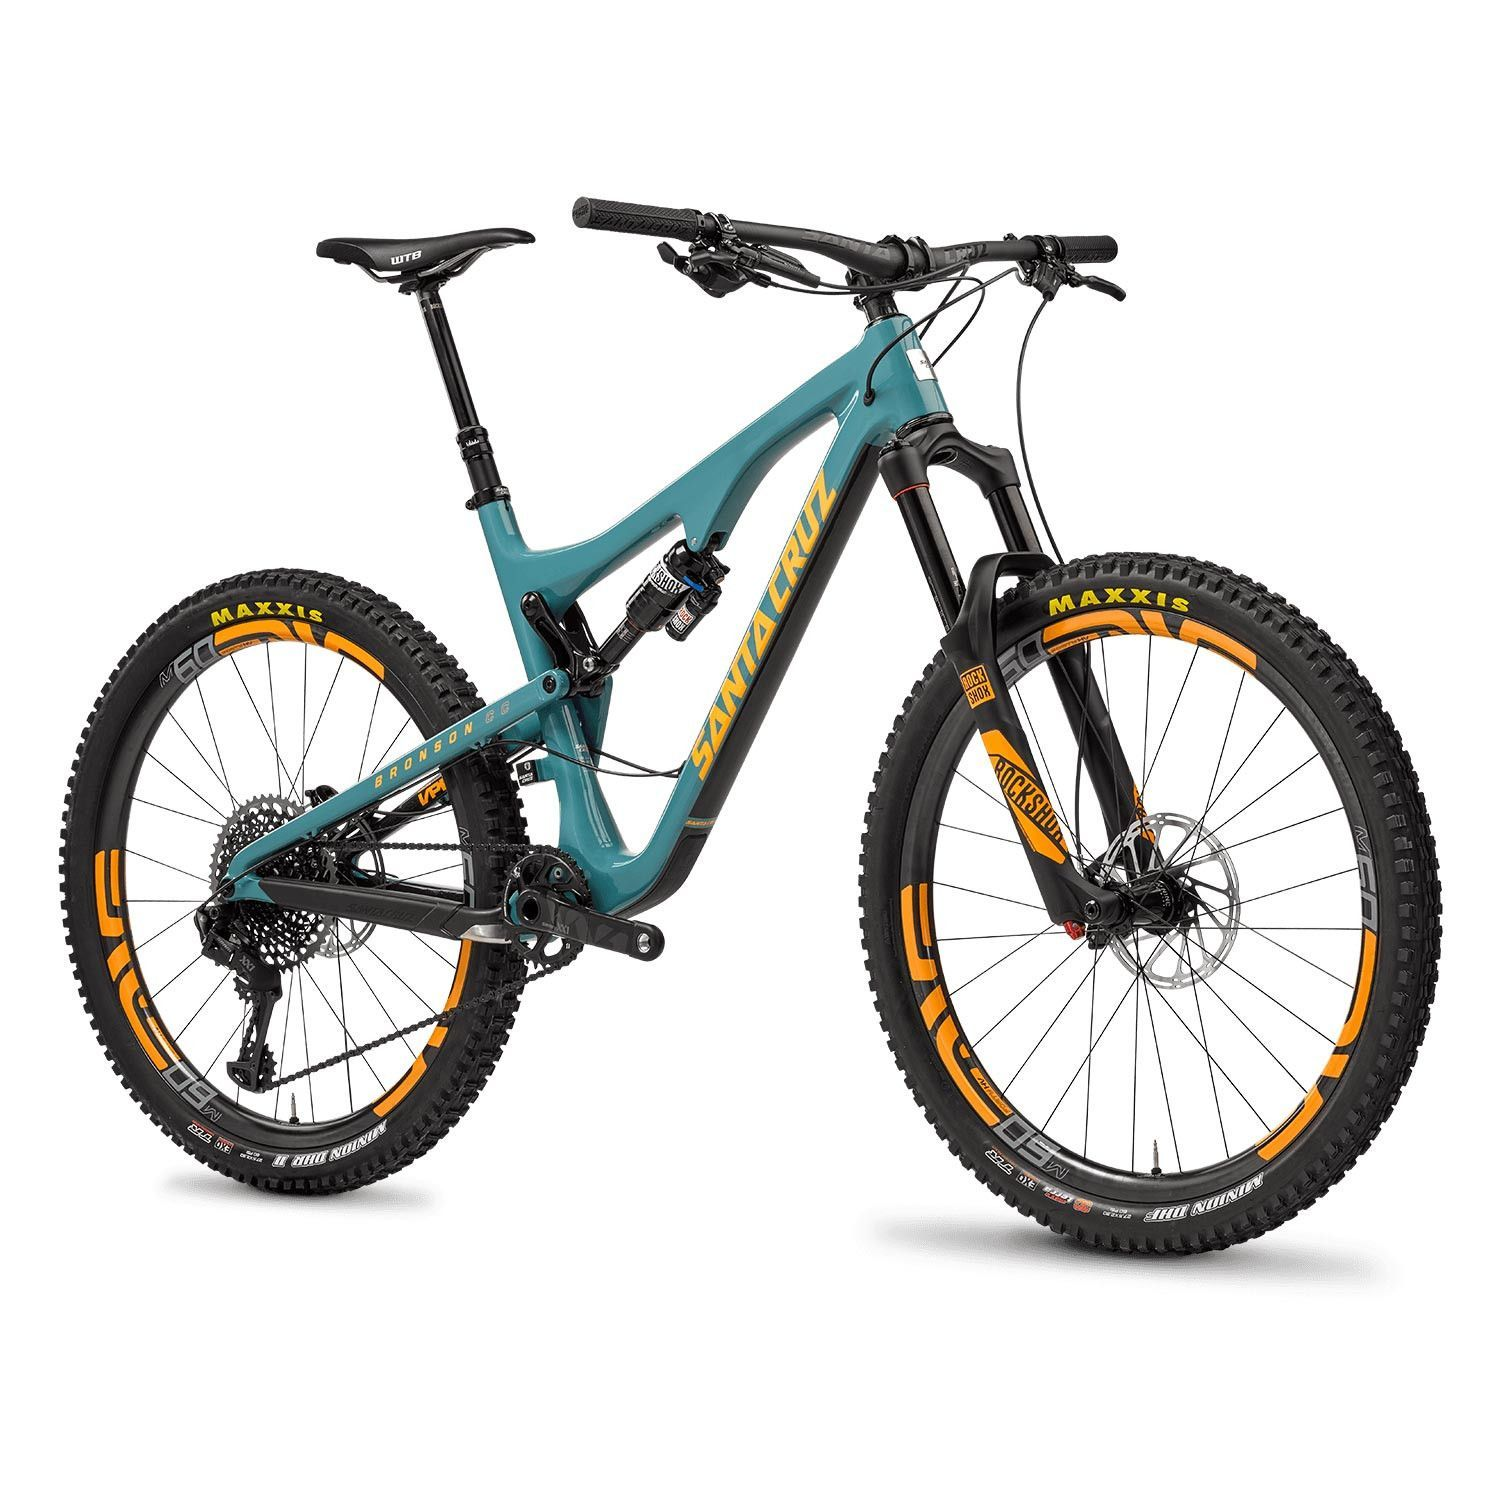 This Awesome Bike Comes With These Delivery Options Free Shipping